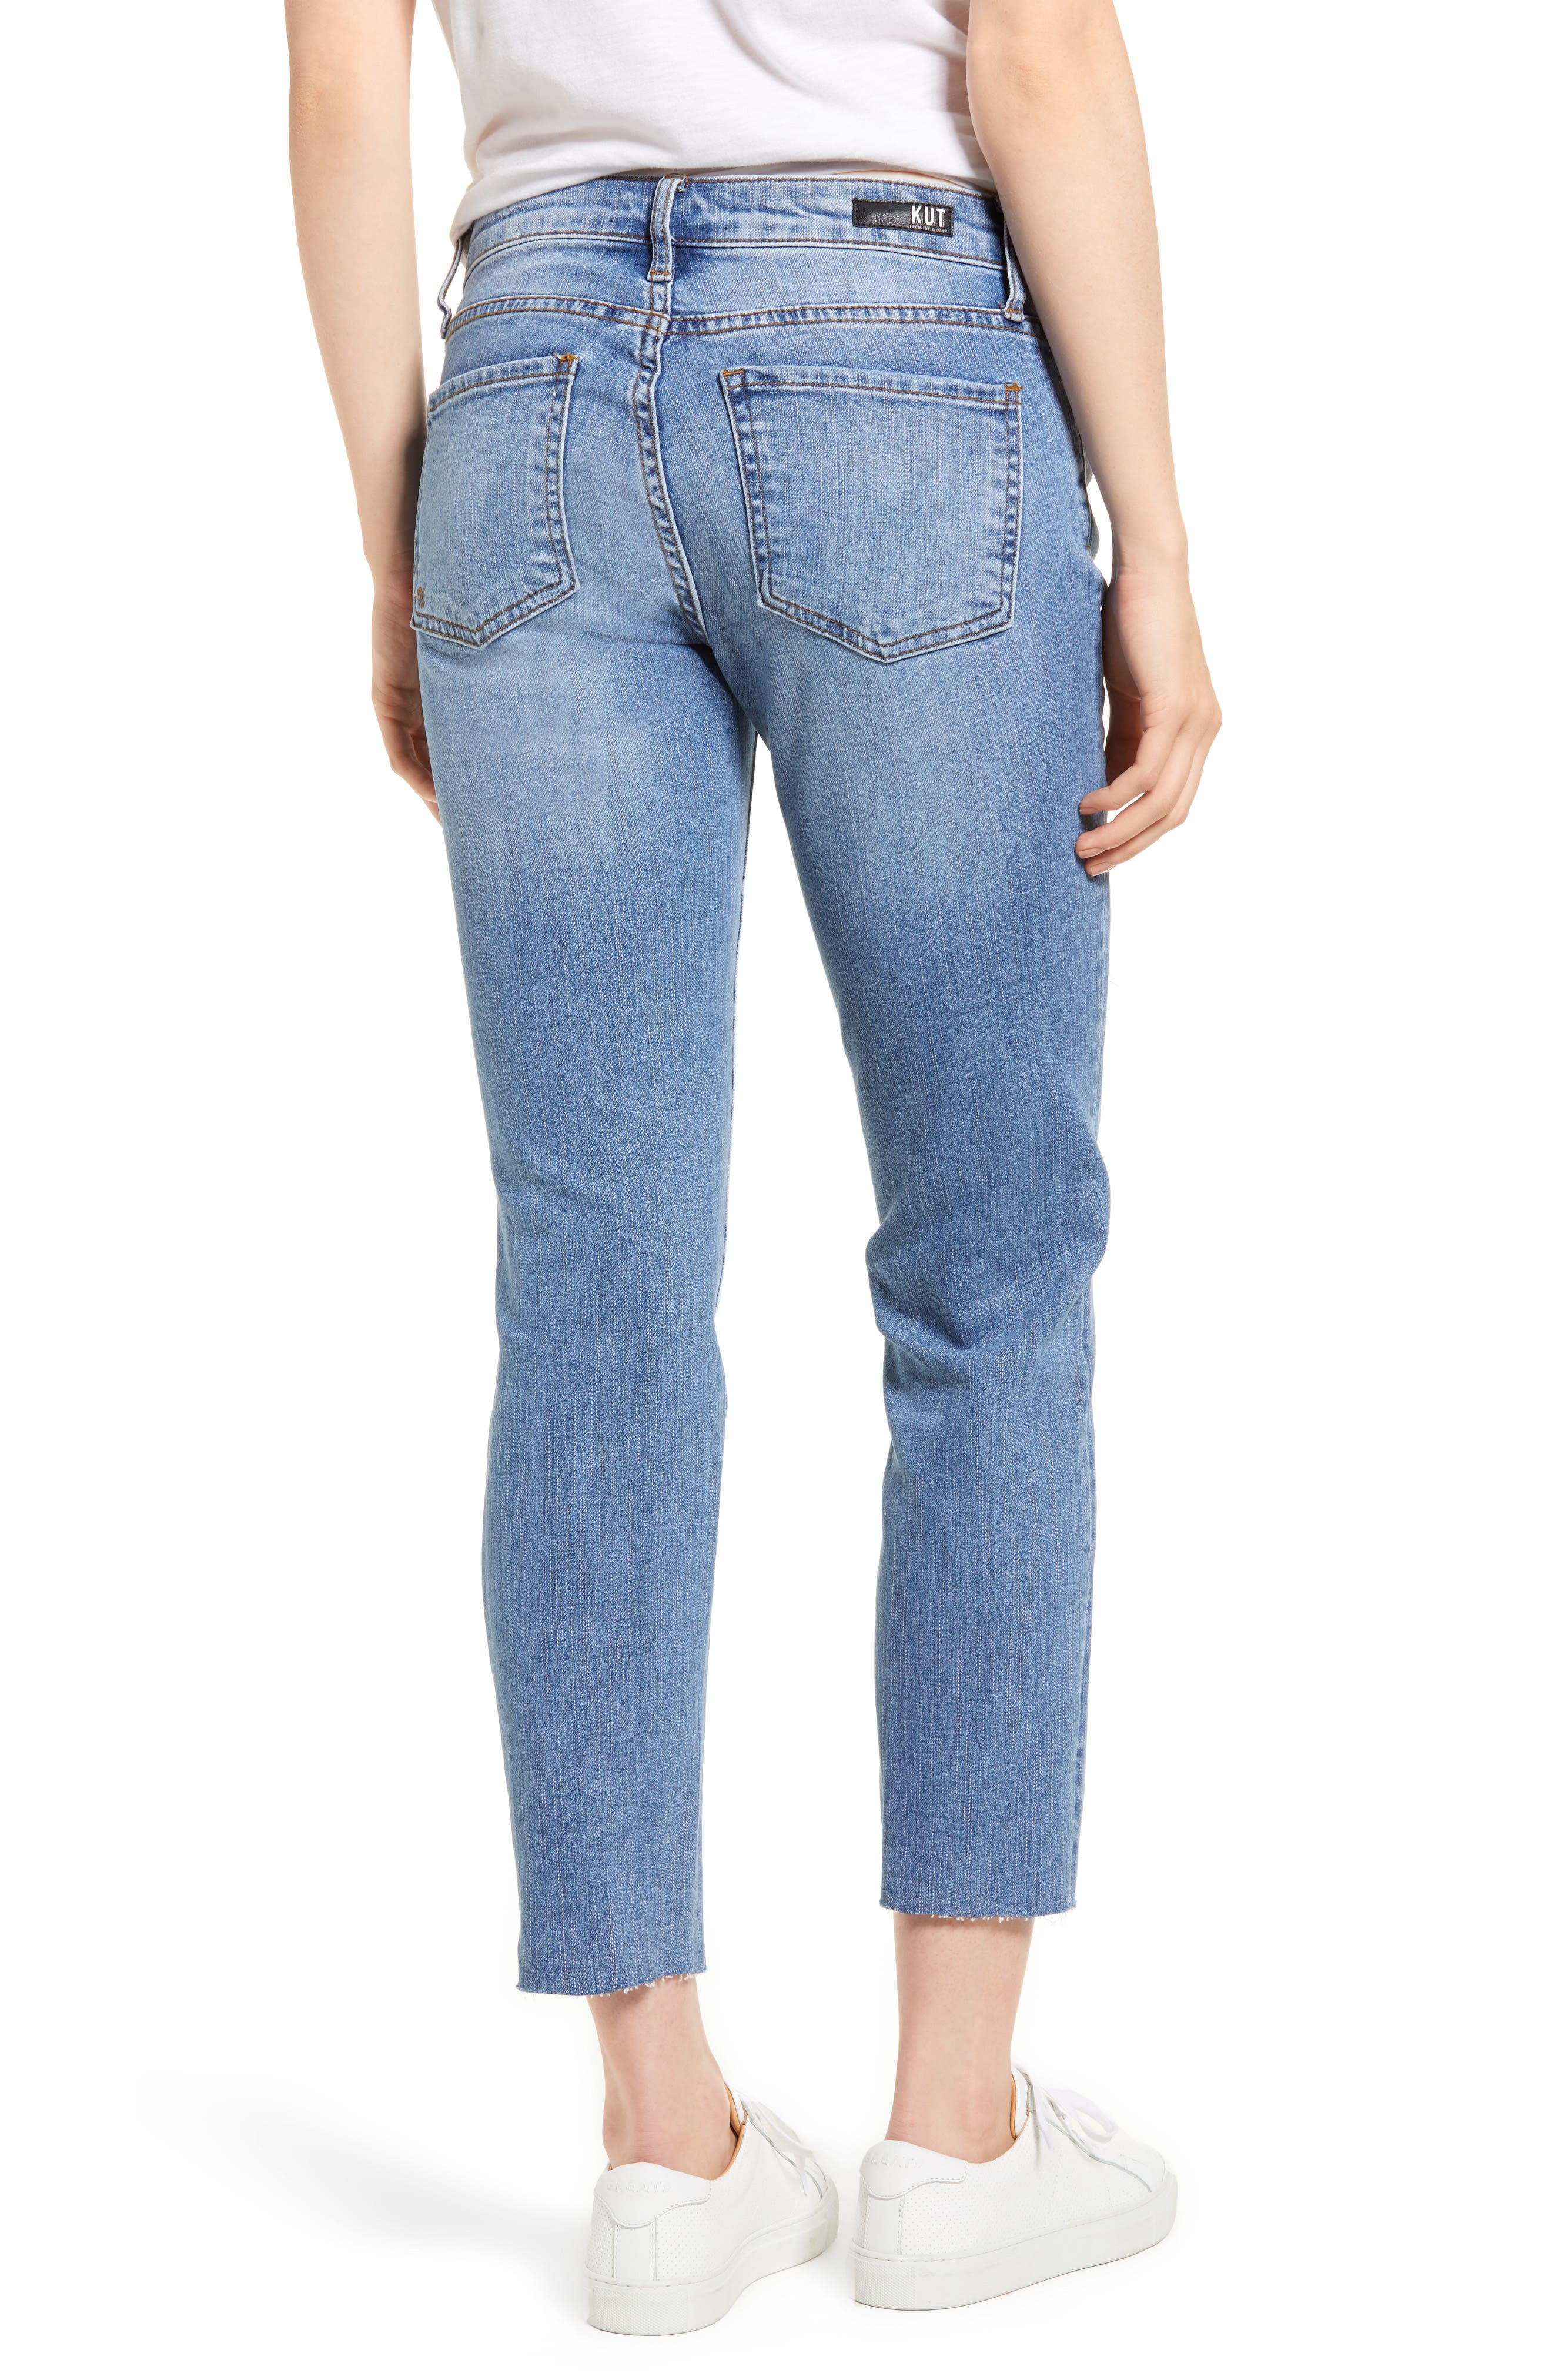 Reese Ripped Raw Edge Ankle Jeans,                             Alternate thumbnail 2, color,